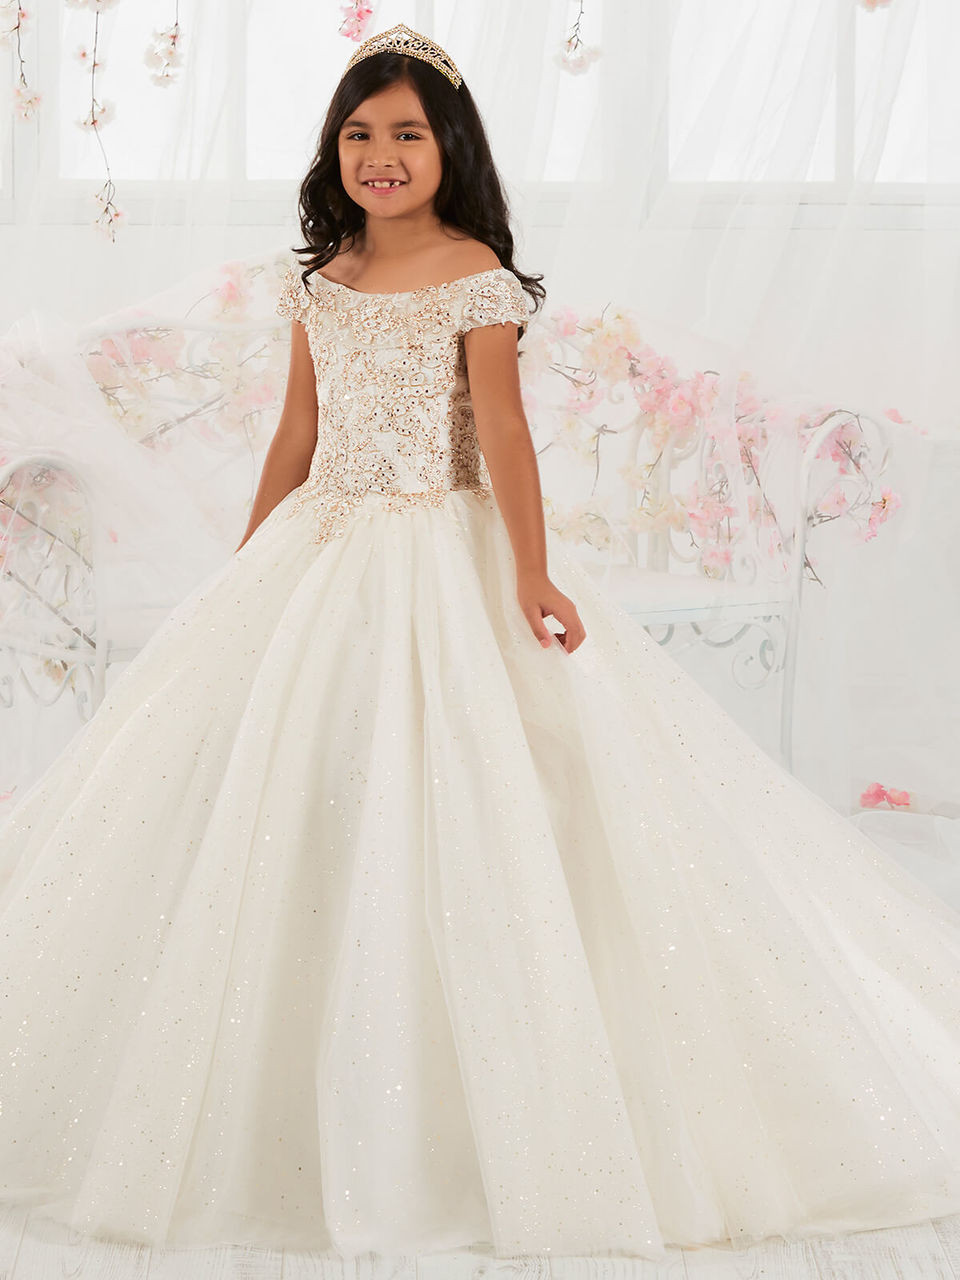 ABAO Childrens Girls Whit Elegant Embroidered Floral Ball Gown Wedding Dress ZG8